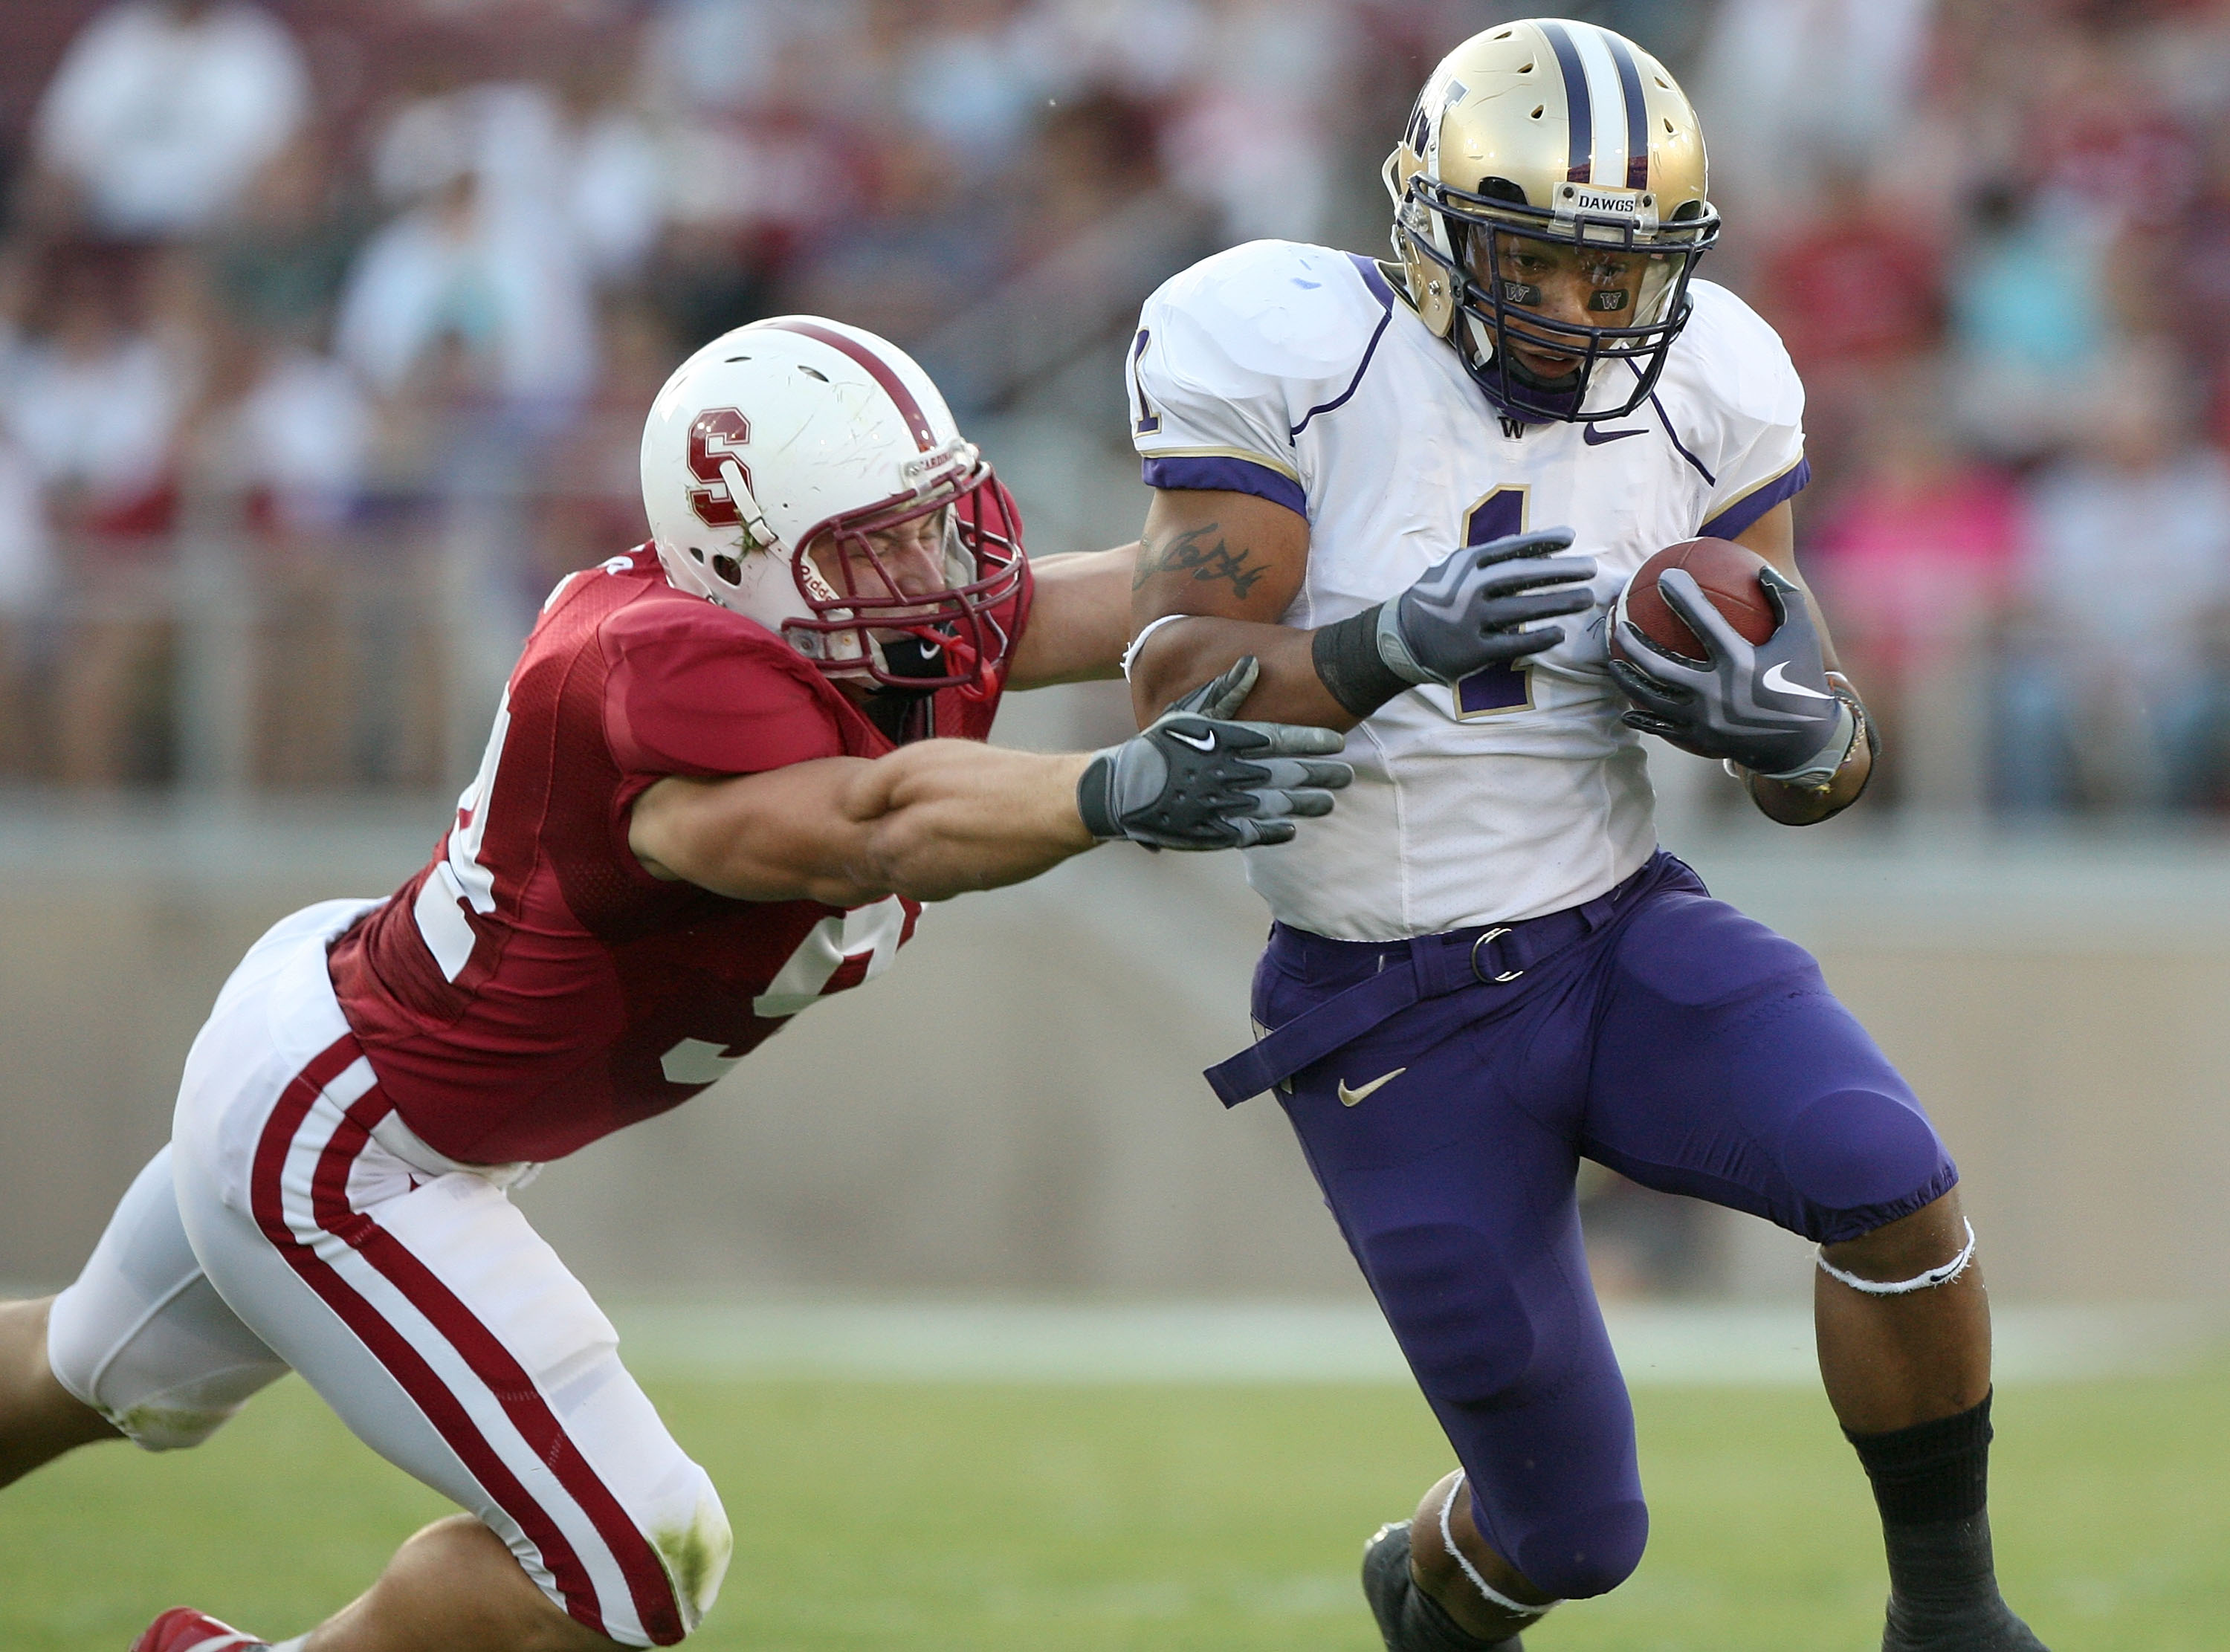 PALO ALTO, CA - SEPTEMBER 26:  Chris Polk #1 of the Washington Huskies runs against Thomas Keiser #94 of the Stanford Cardinal at Stanford Stadium on September 26, 2009 in Palo Alto, California.  (Photo by Jed Jacobsohn/Getty Images)